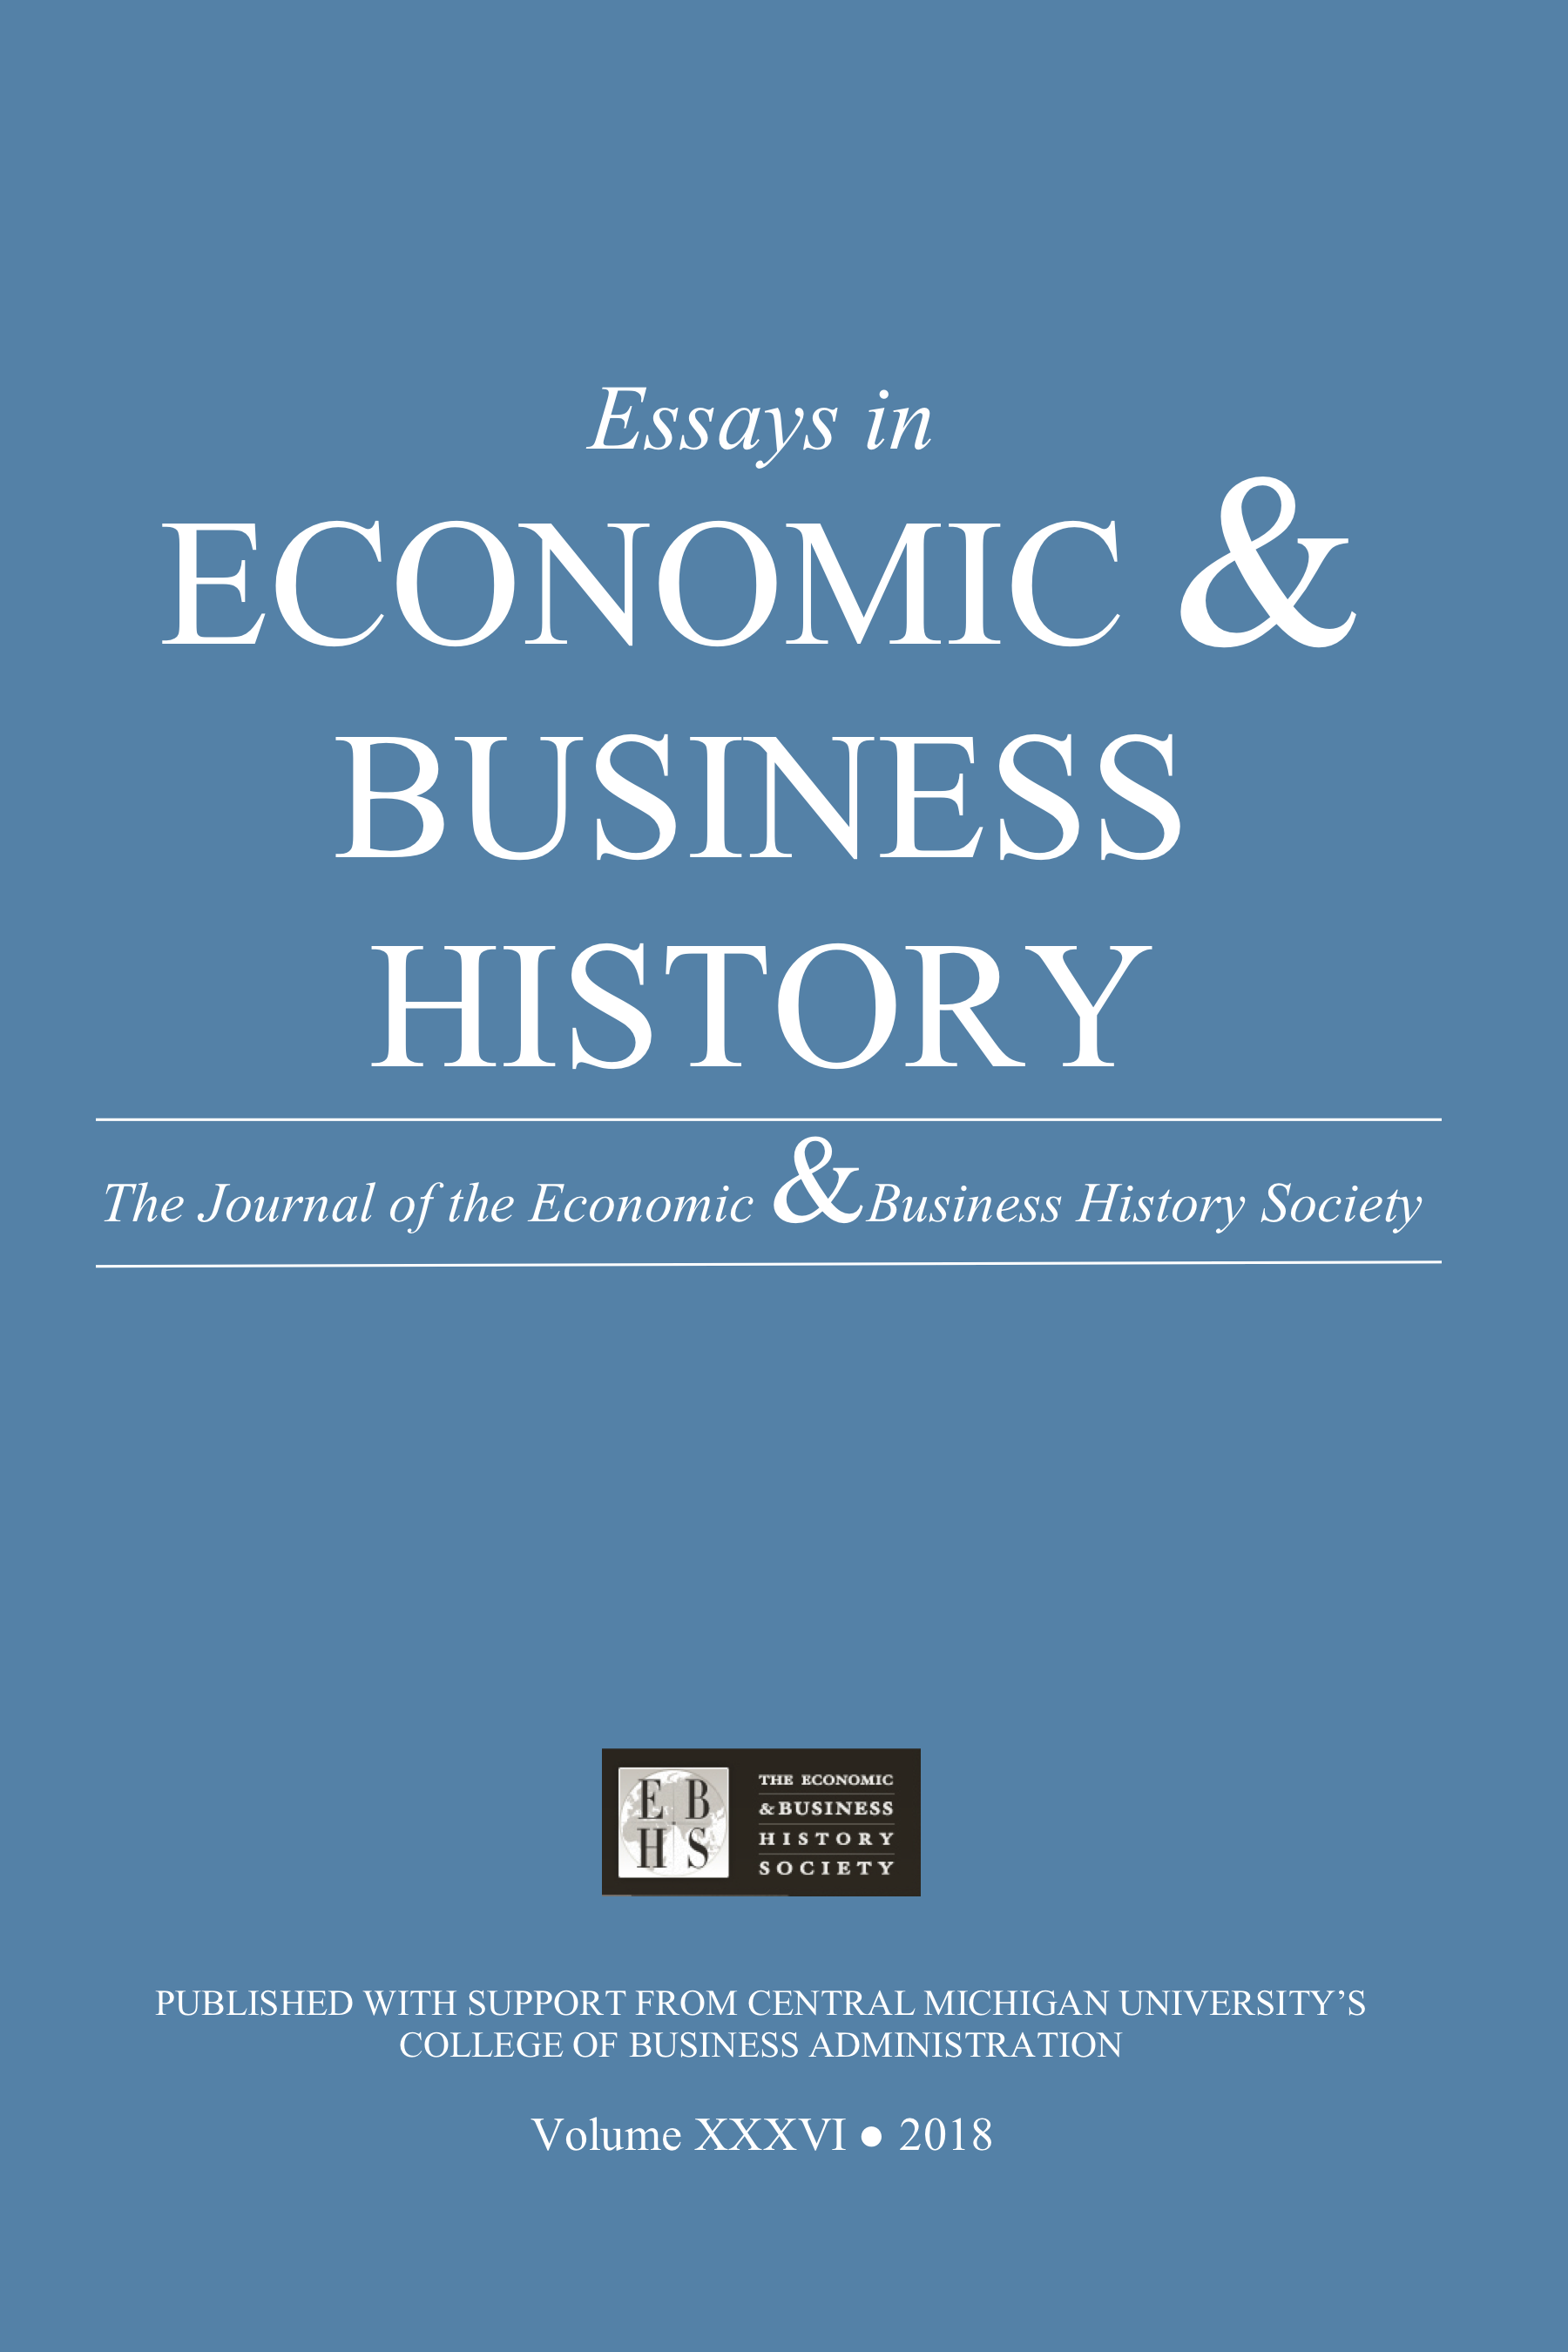 Essays in Economic & Business History 2018